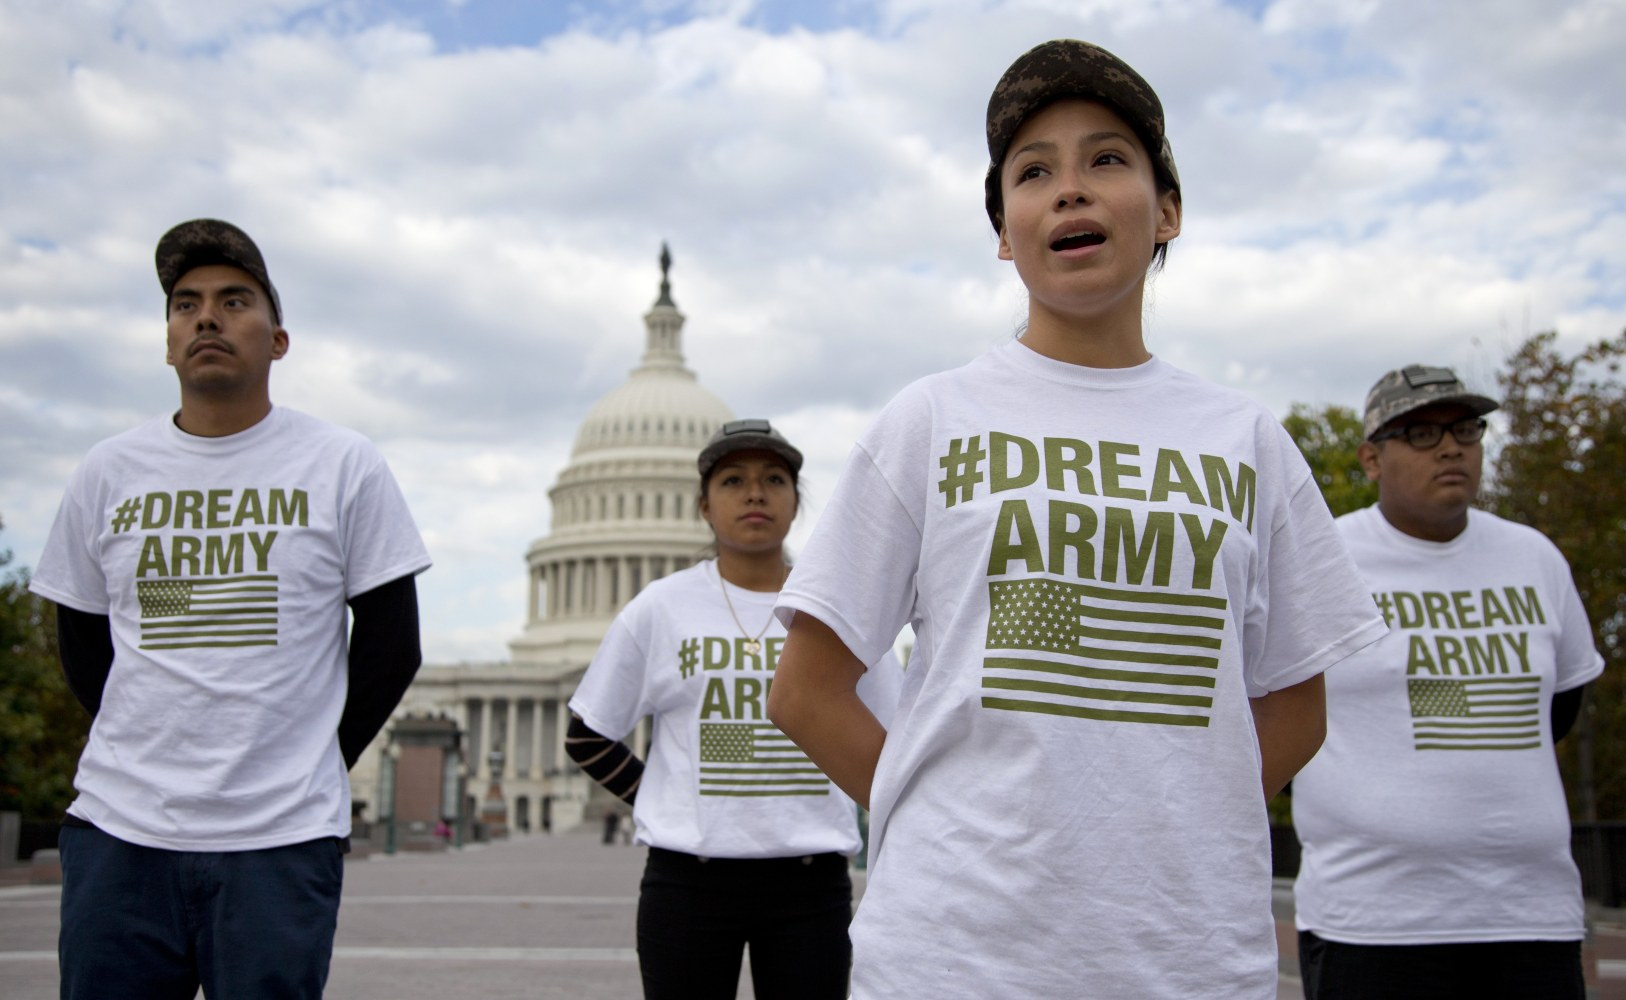 Homeland Security: 'Dreamers' can remain in US